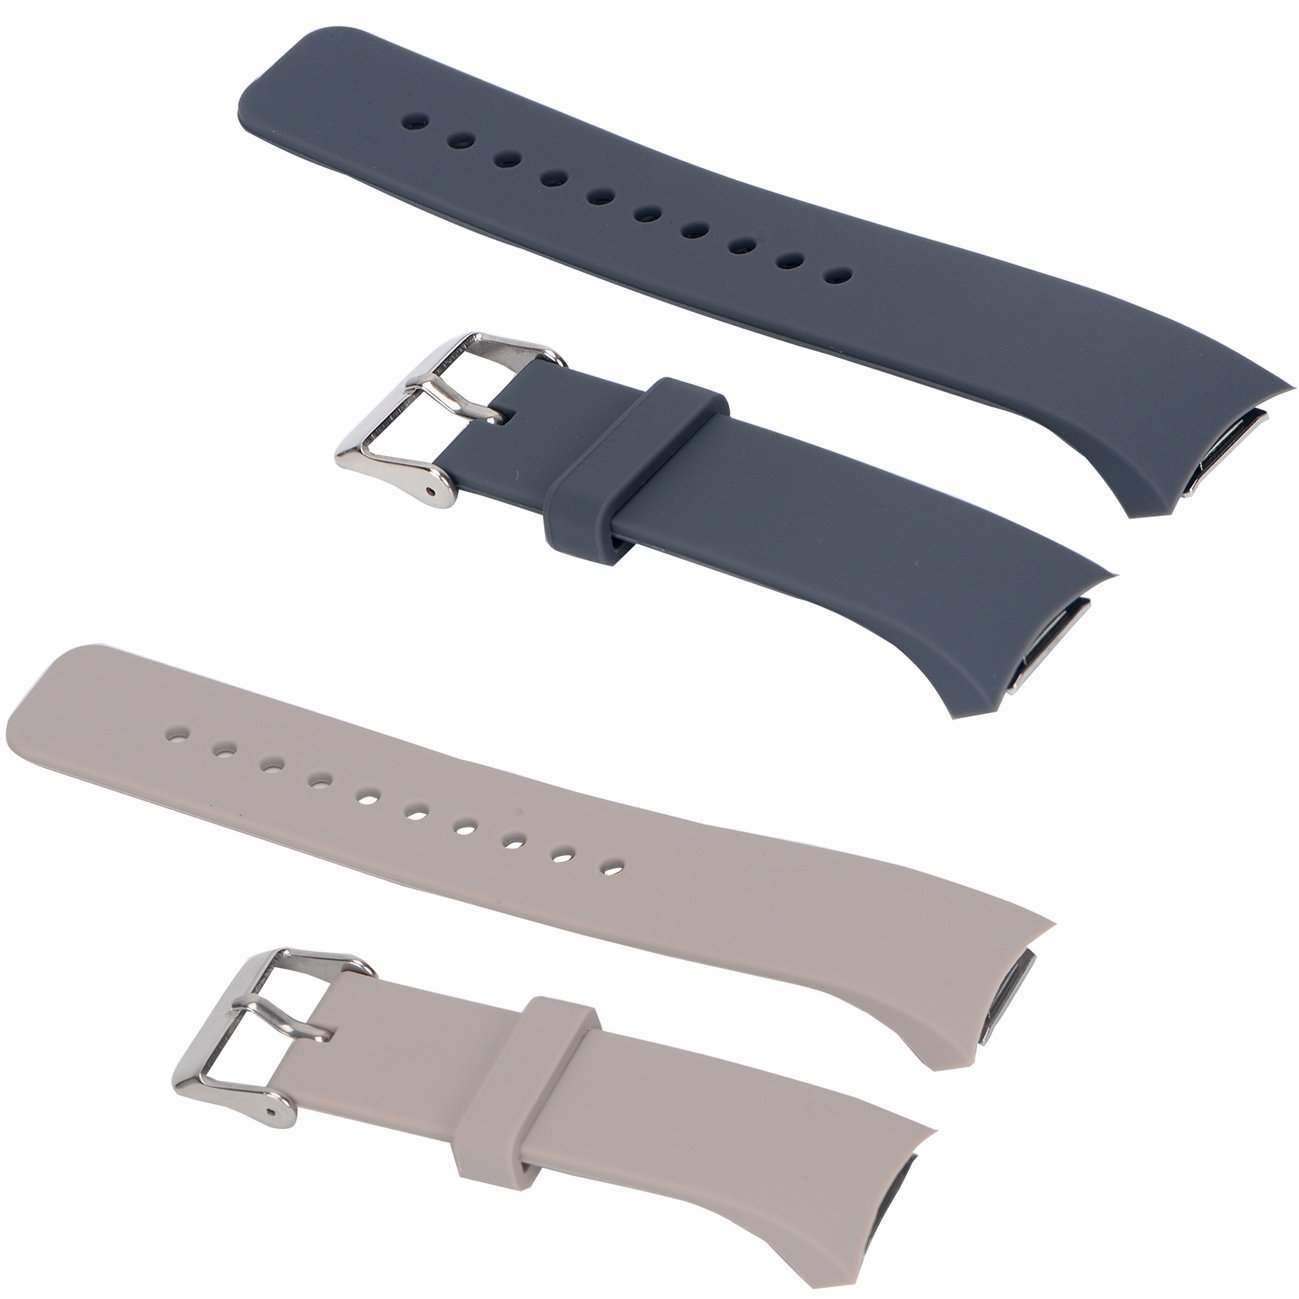 E ECSEM 2pcs Small Bands for Gear Fit2 Pro Watch, Replacement Soft Silicone Bands Straps for Samsung Gear Fit2 Pro Smart Fitness Band and Samsung Gear Fit2 Smartwatch : Khaki+Grey